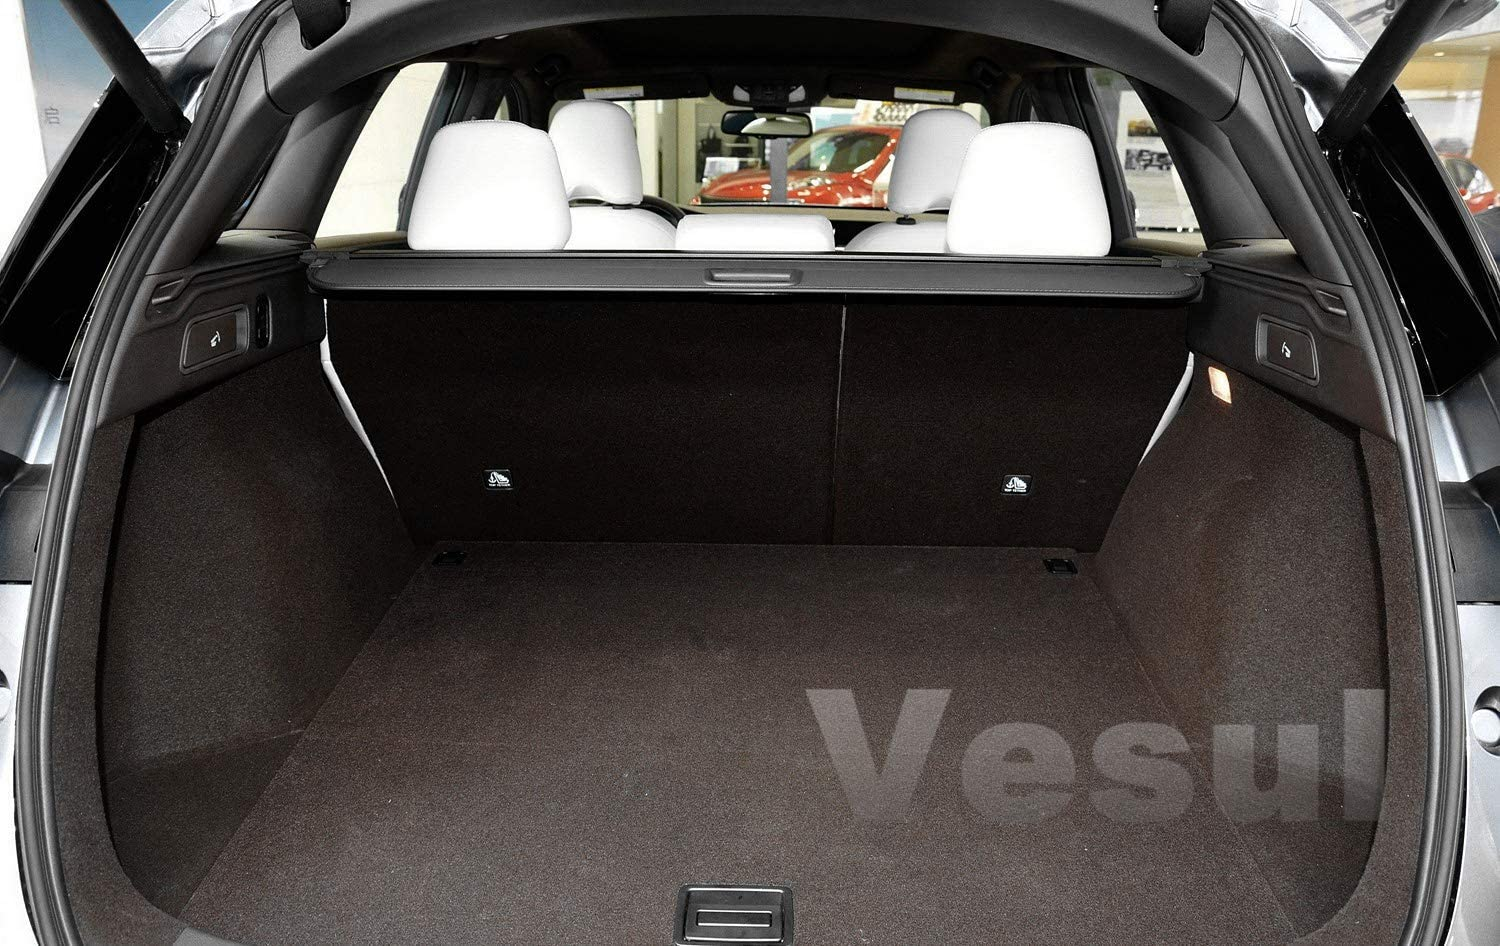 Vesul Black Tonneau Cover Retractable Rear Trunk Cargo Luggage Security Shade Cover Shield Fits on Infiniti QX50 2019